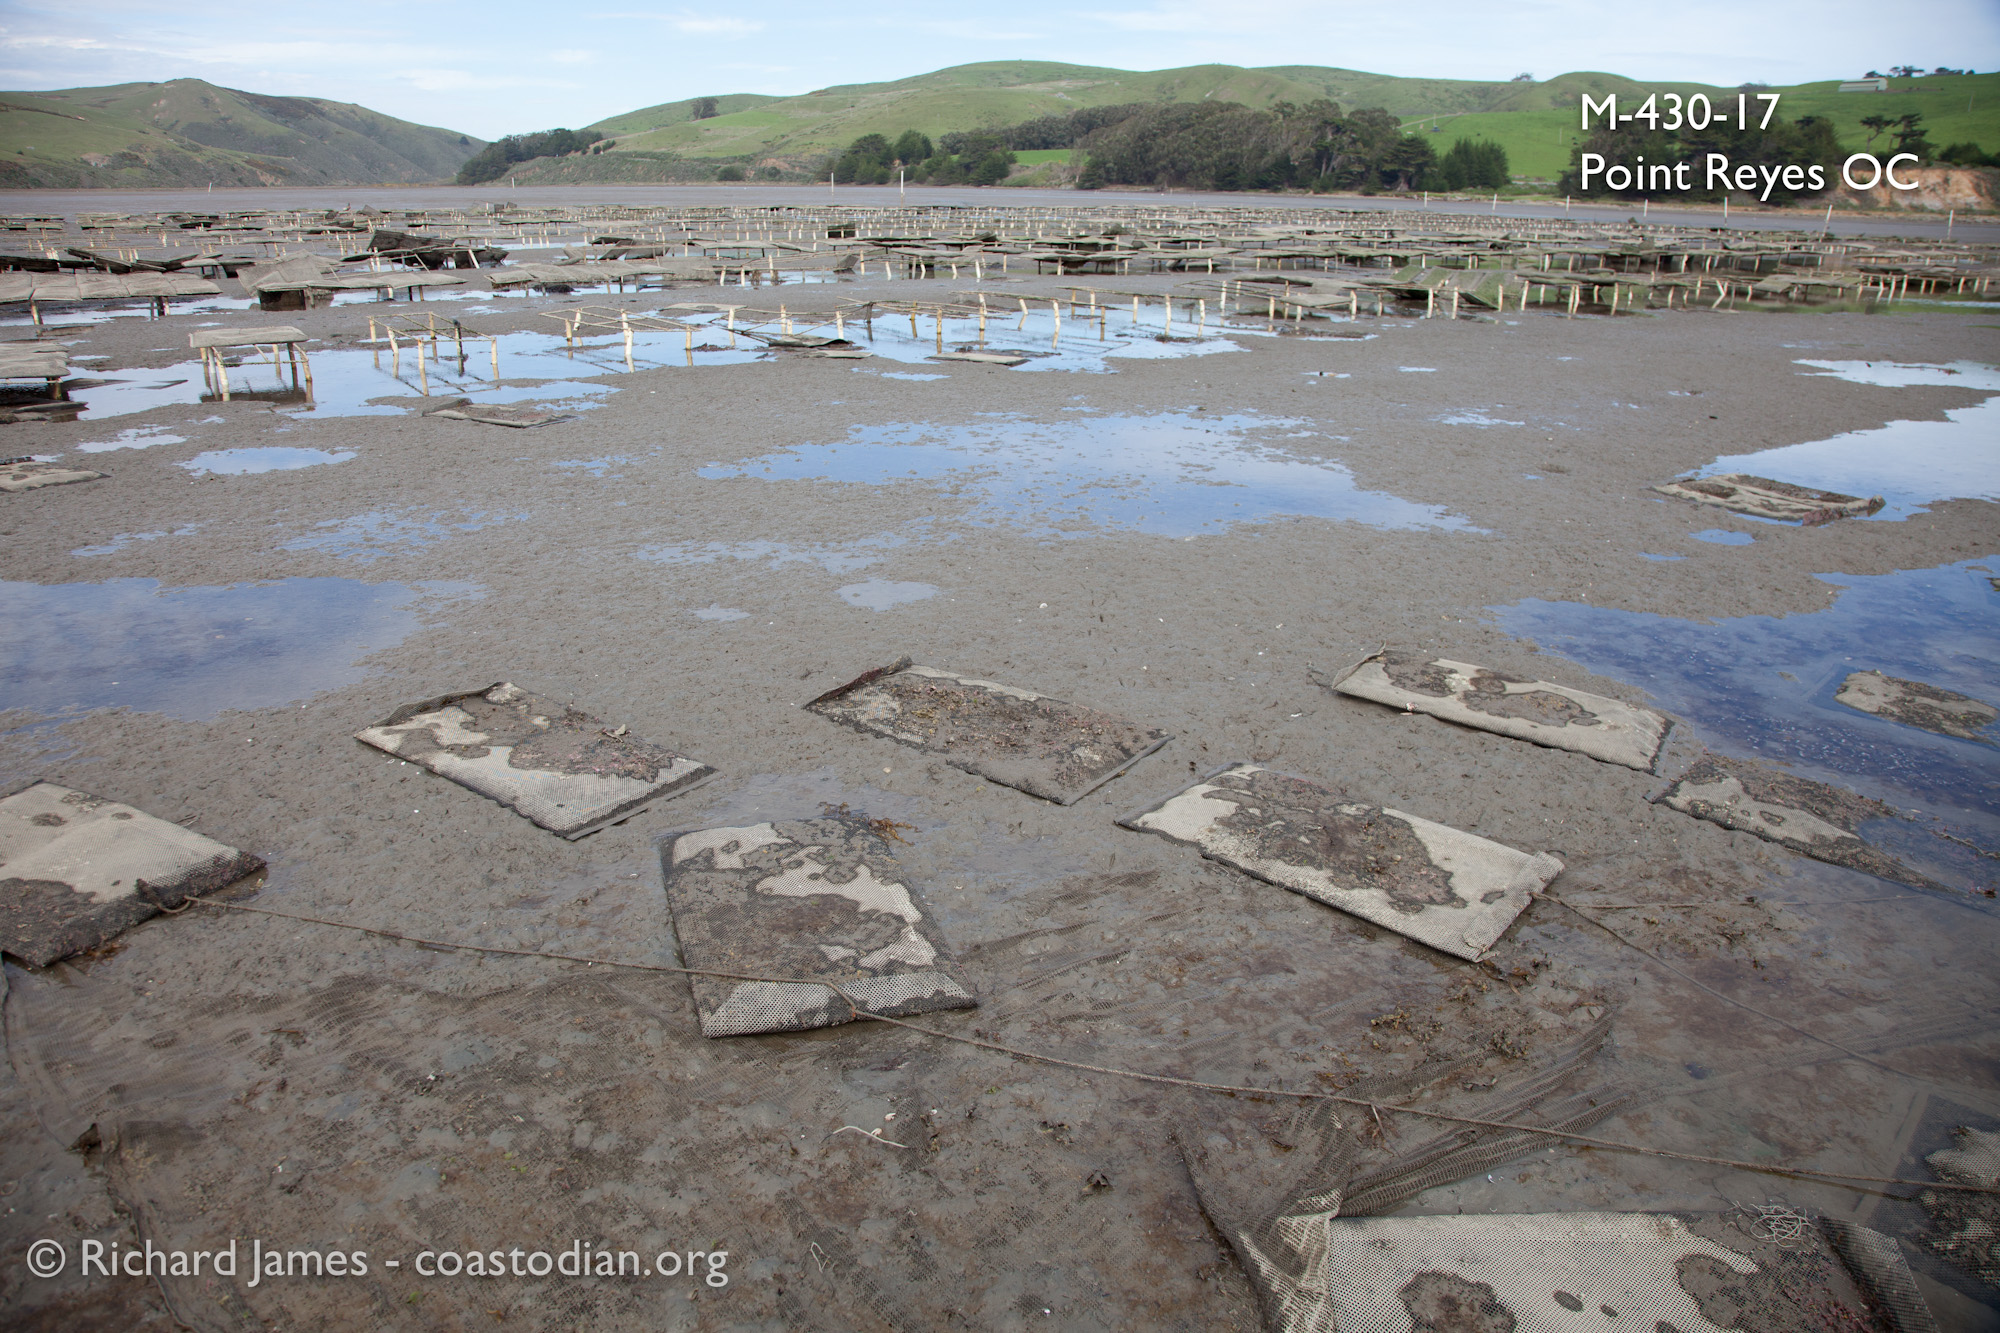 Grow-out bags laying in the mud on lease M-430-17, run by Point Reyes Oyster Company.